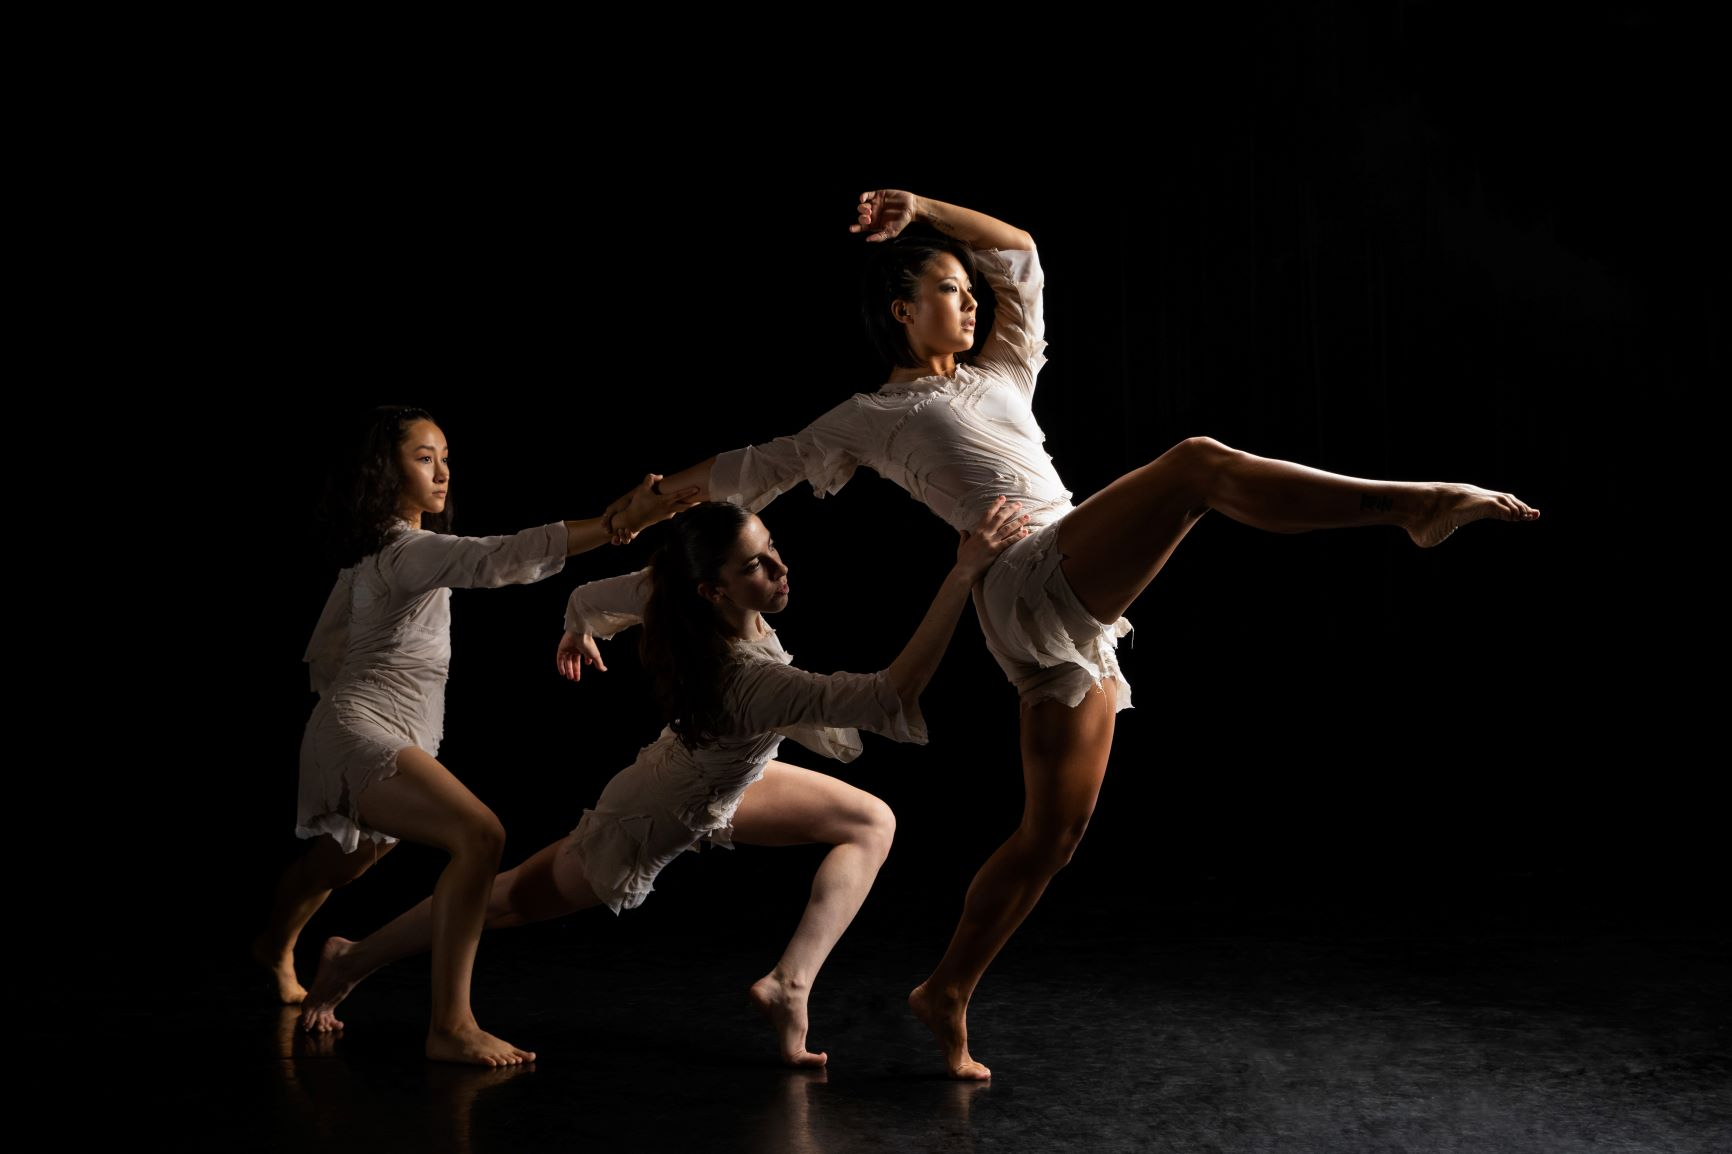 Three female dancers in white form a diagonal each with one knee bent